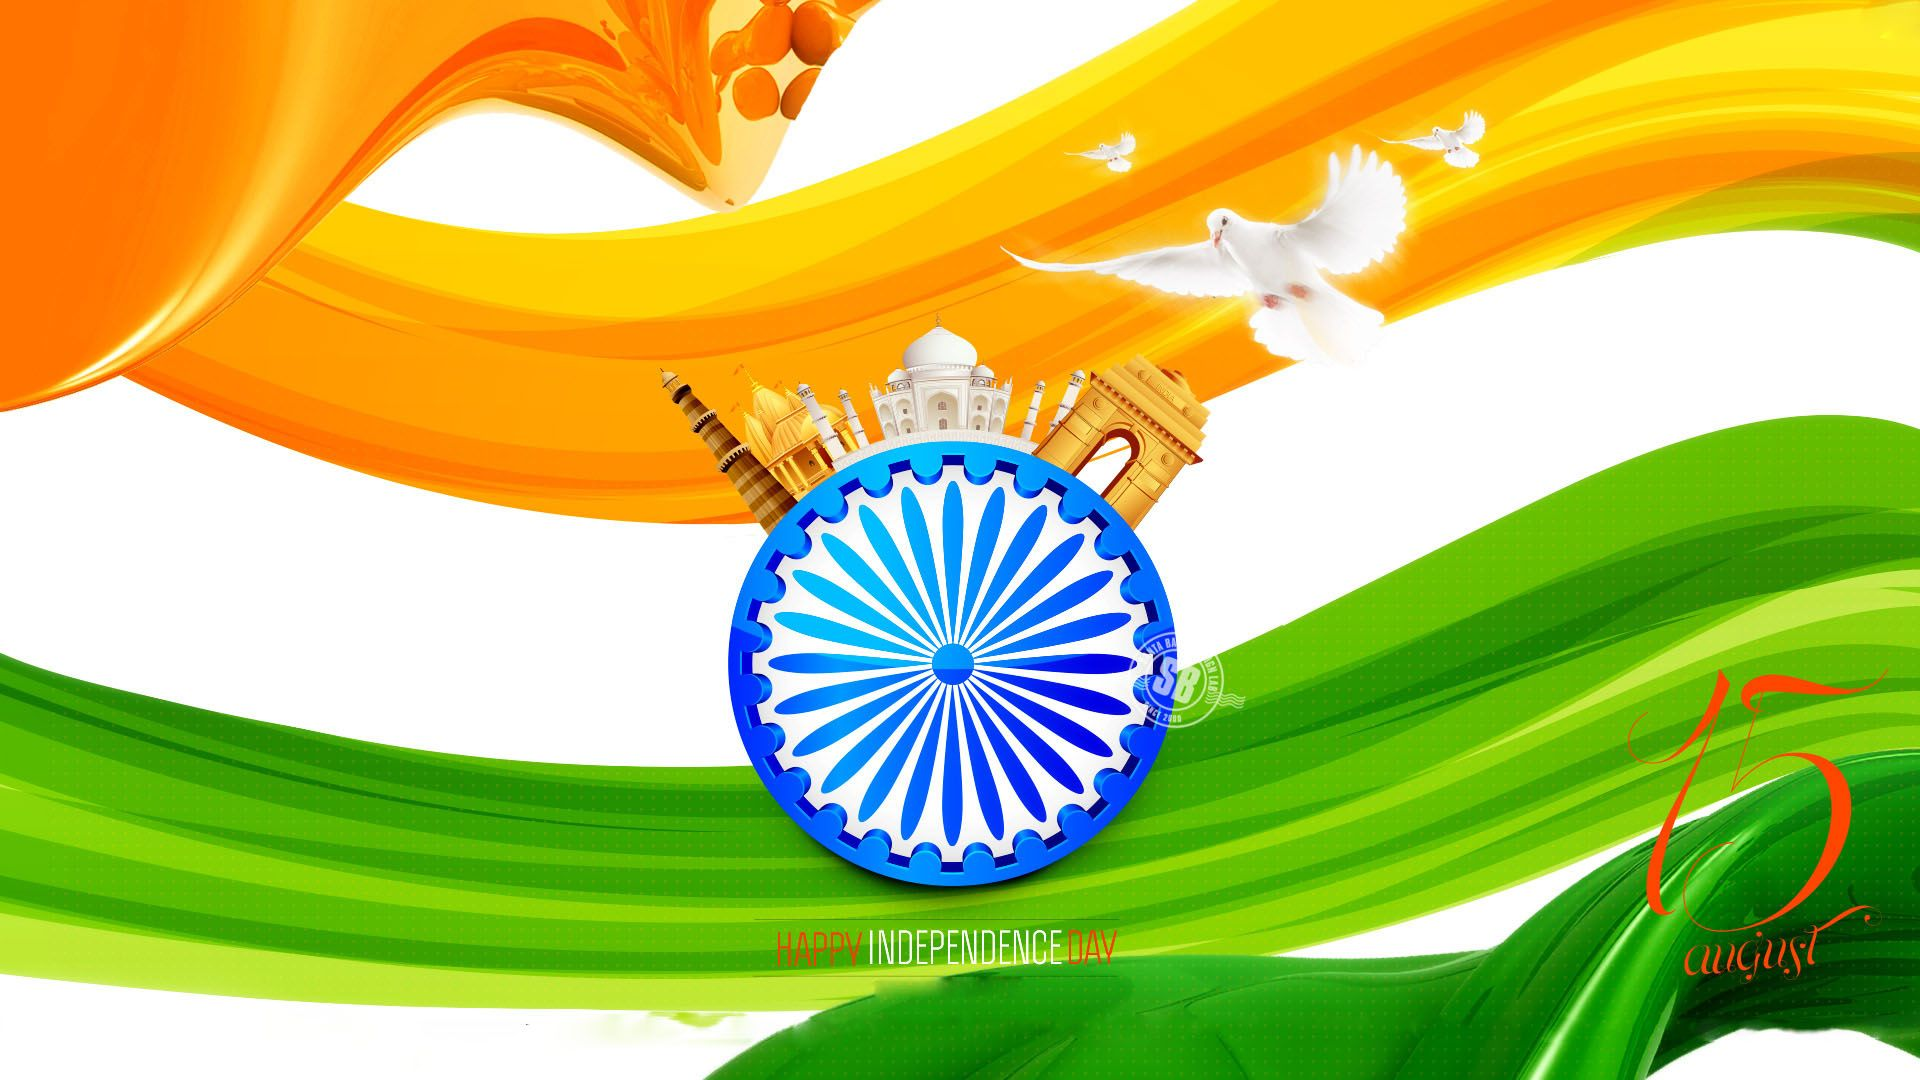 Happy Independence Day Images Independence Day Wallpaper Happy Independence Day Wallpaper August Wallpaper